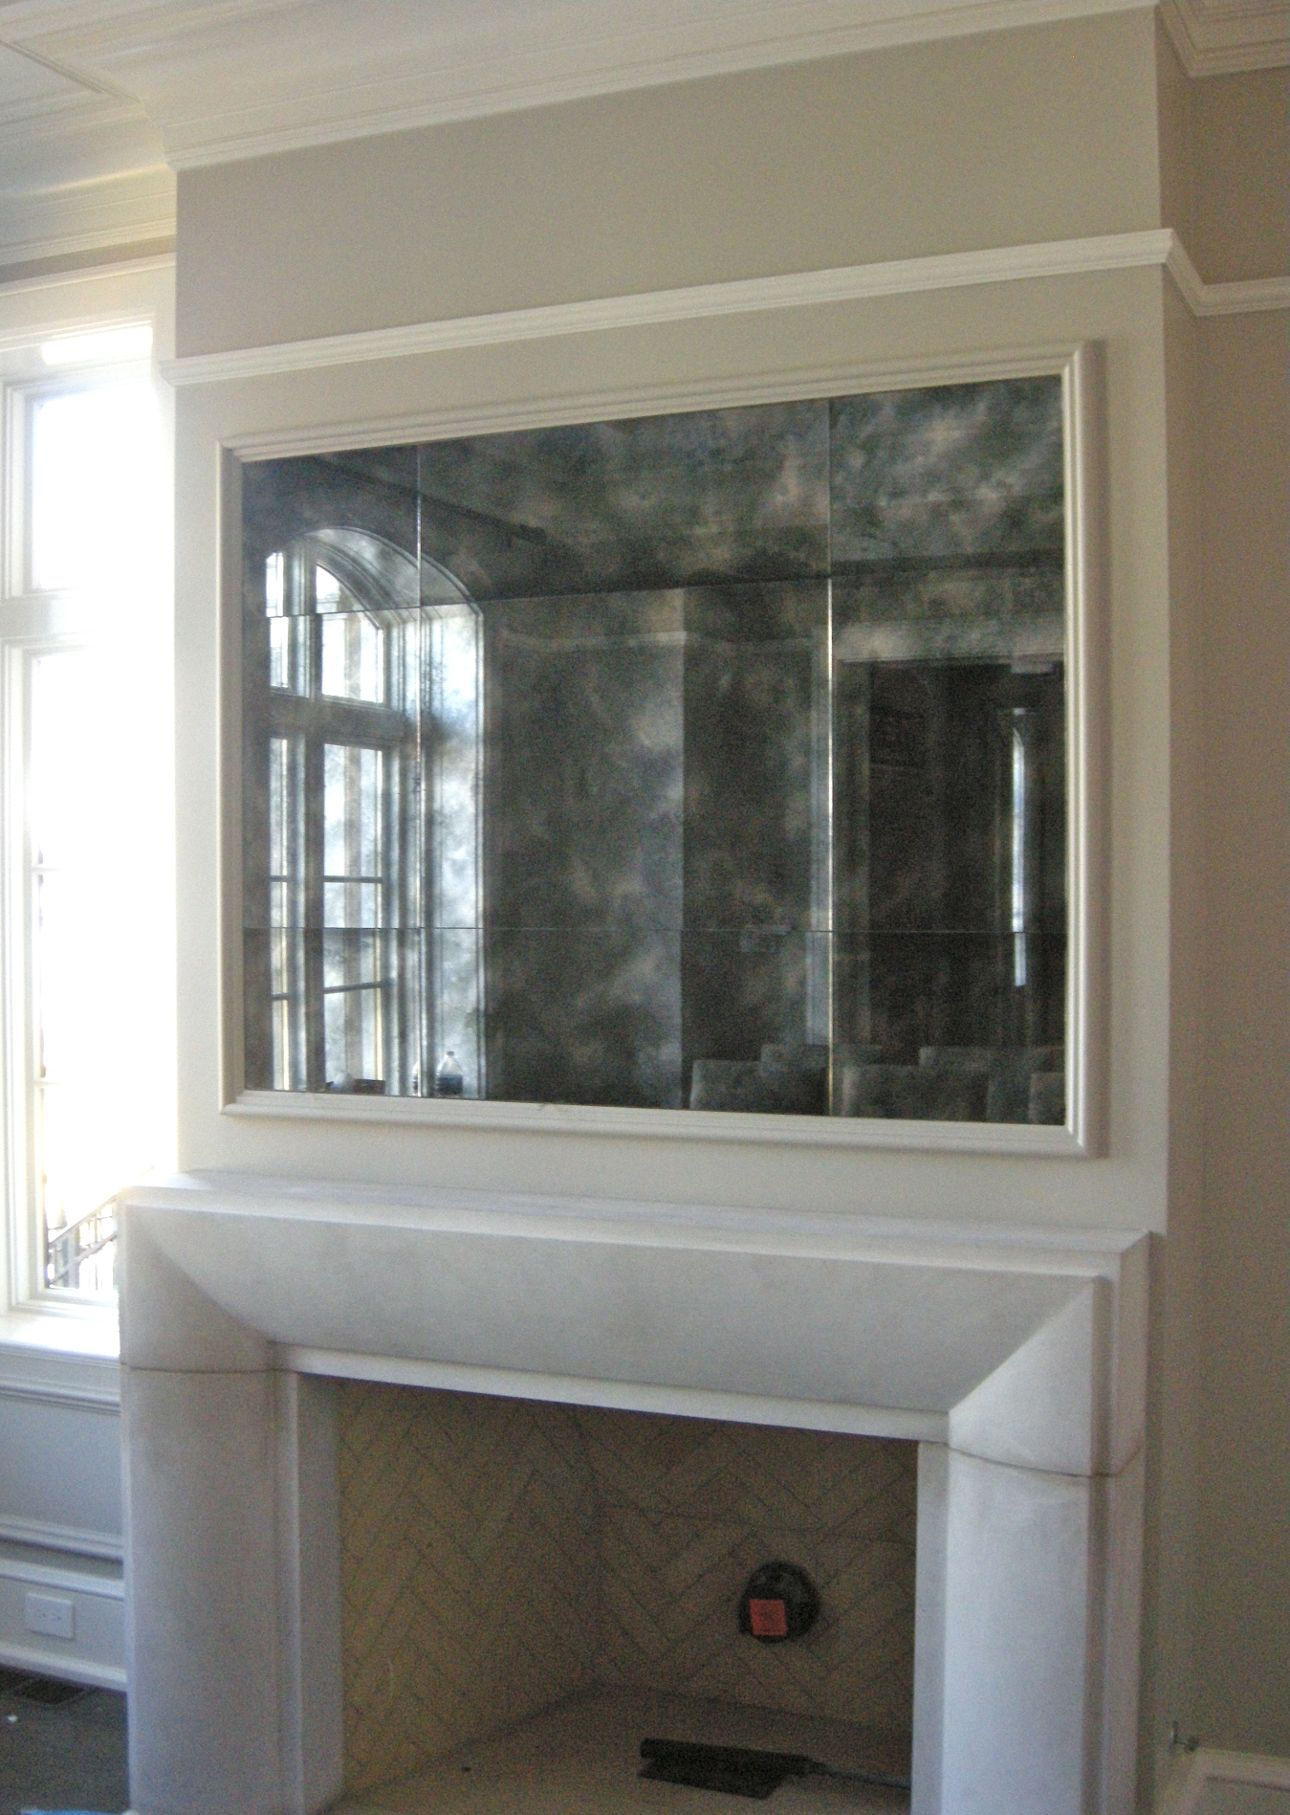 gikrandole country fireplace gesso wall mirror room english above in rococo style shelves with antique dining